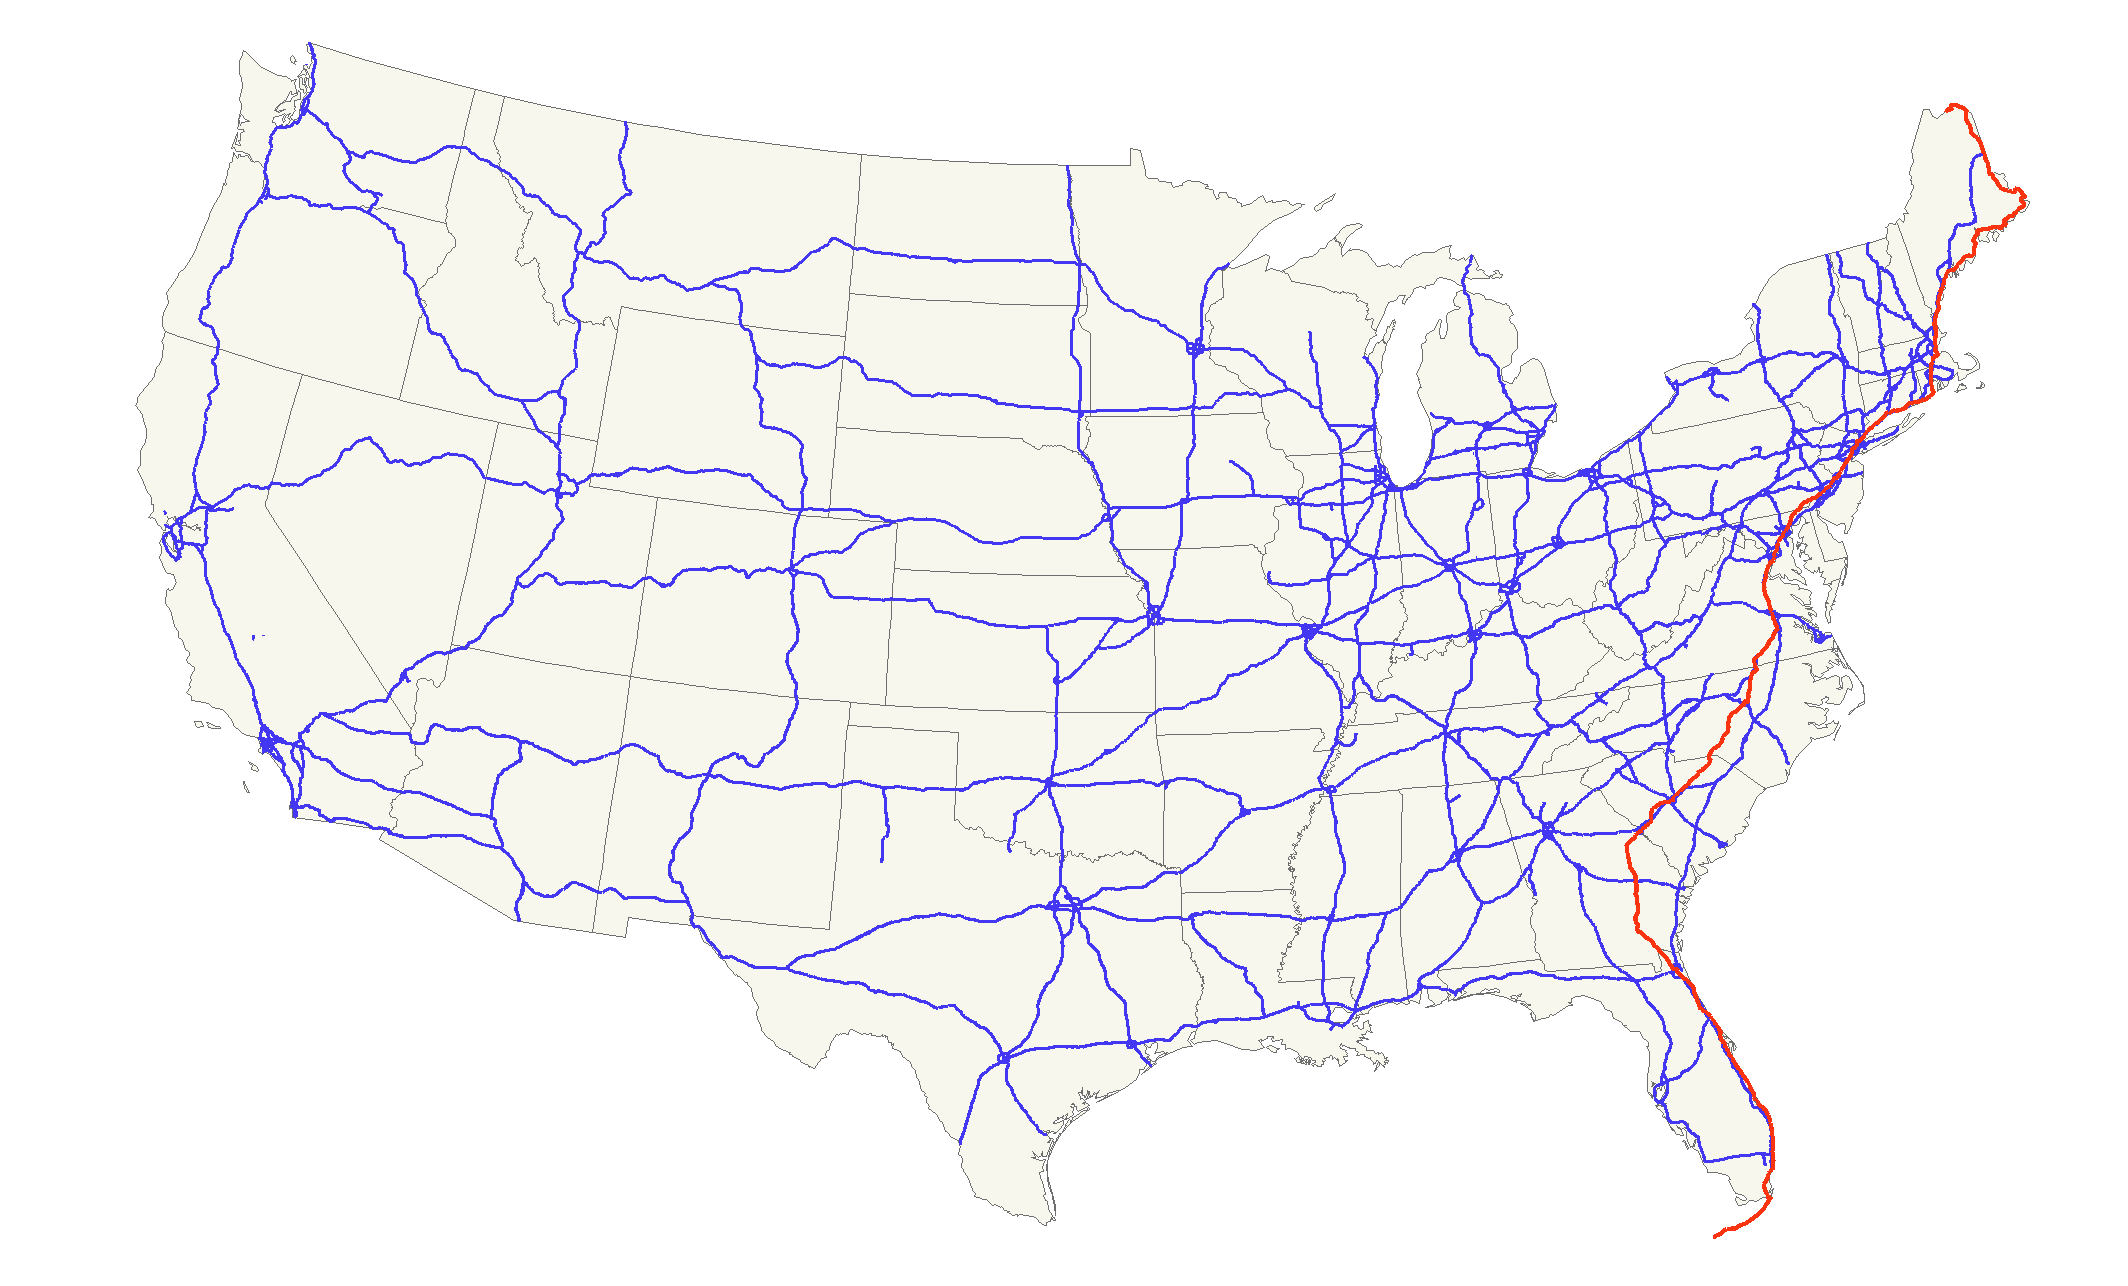 U.S. Route 1 - Wikipedia on newport on us map, juneau on us map, martha's vineyard on us map, madison on us map, mount vernon on us map, portsmouth on us map, naples on us map, panama city on us map, north platte on us map, roanoke on us map, walt disney world on us map, largo on us map, cancun on us map, columbia on us map, grand canyon national park on us map, orange county on us map, cabo san lucas on us map, sioux falls on us map, hudson on us map, saint augustine on us map,